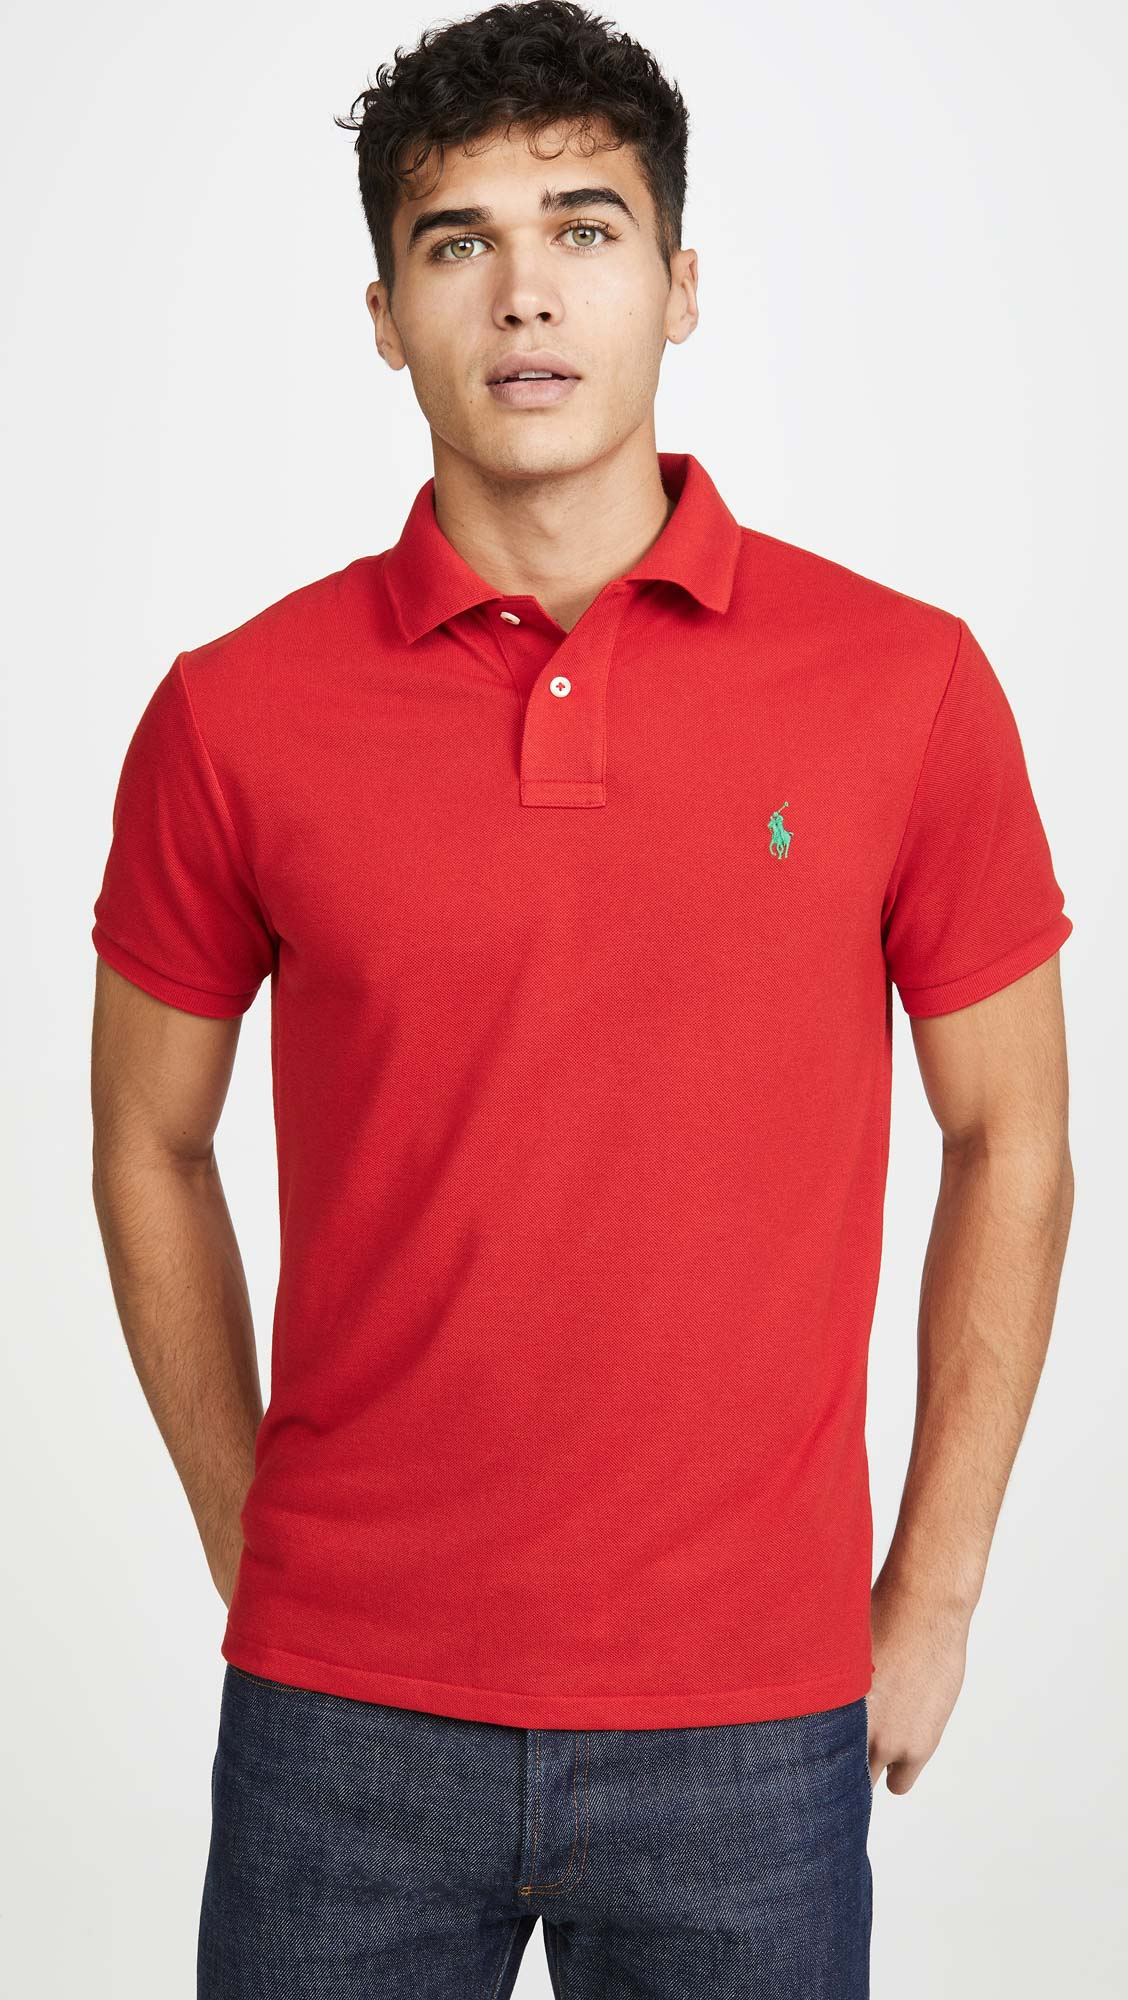 Polo Ralph Lauren Masculina Custom Fit  Small Pony Vermelho